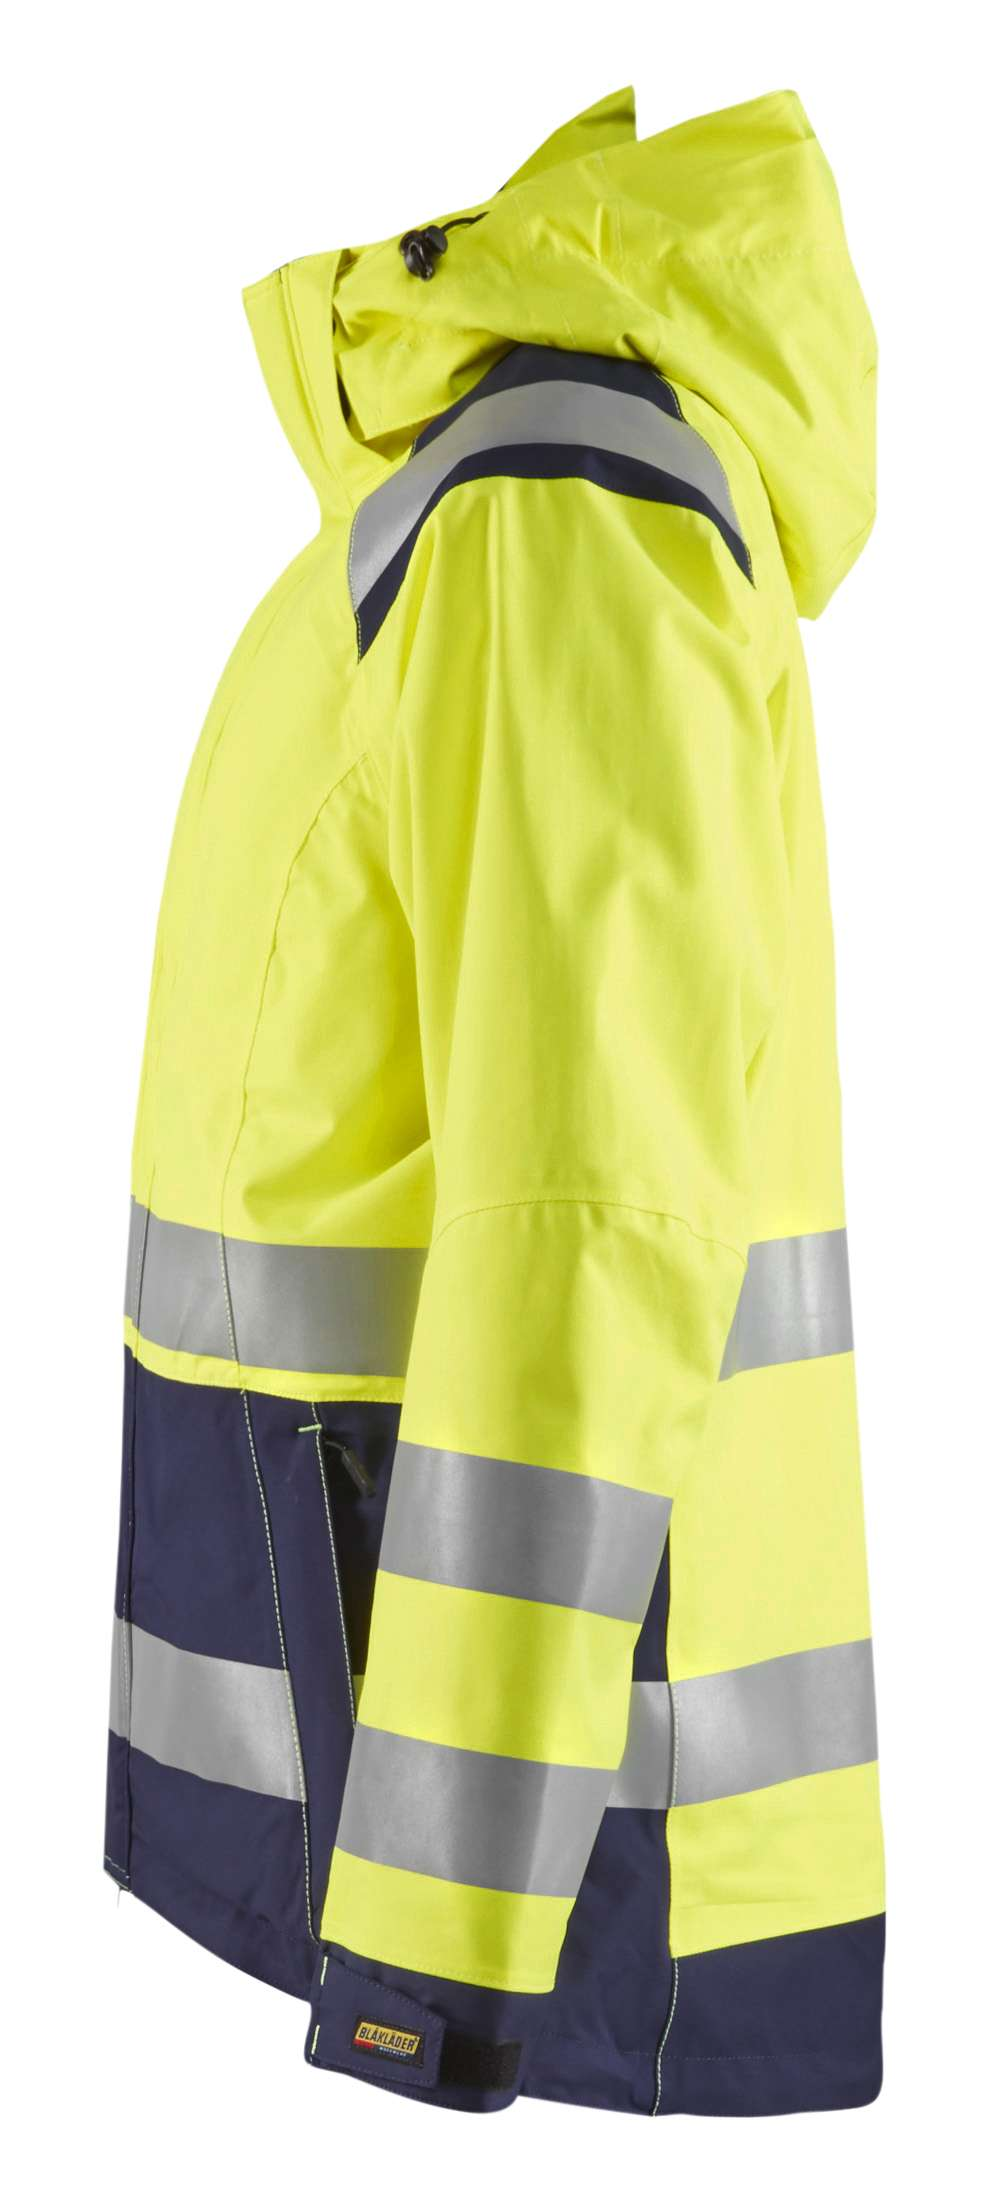 Blaklader Dames regenjacks 49041987 High Vis geel-marineblauw(3389)